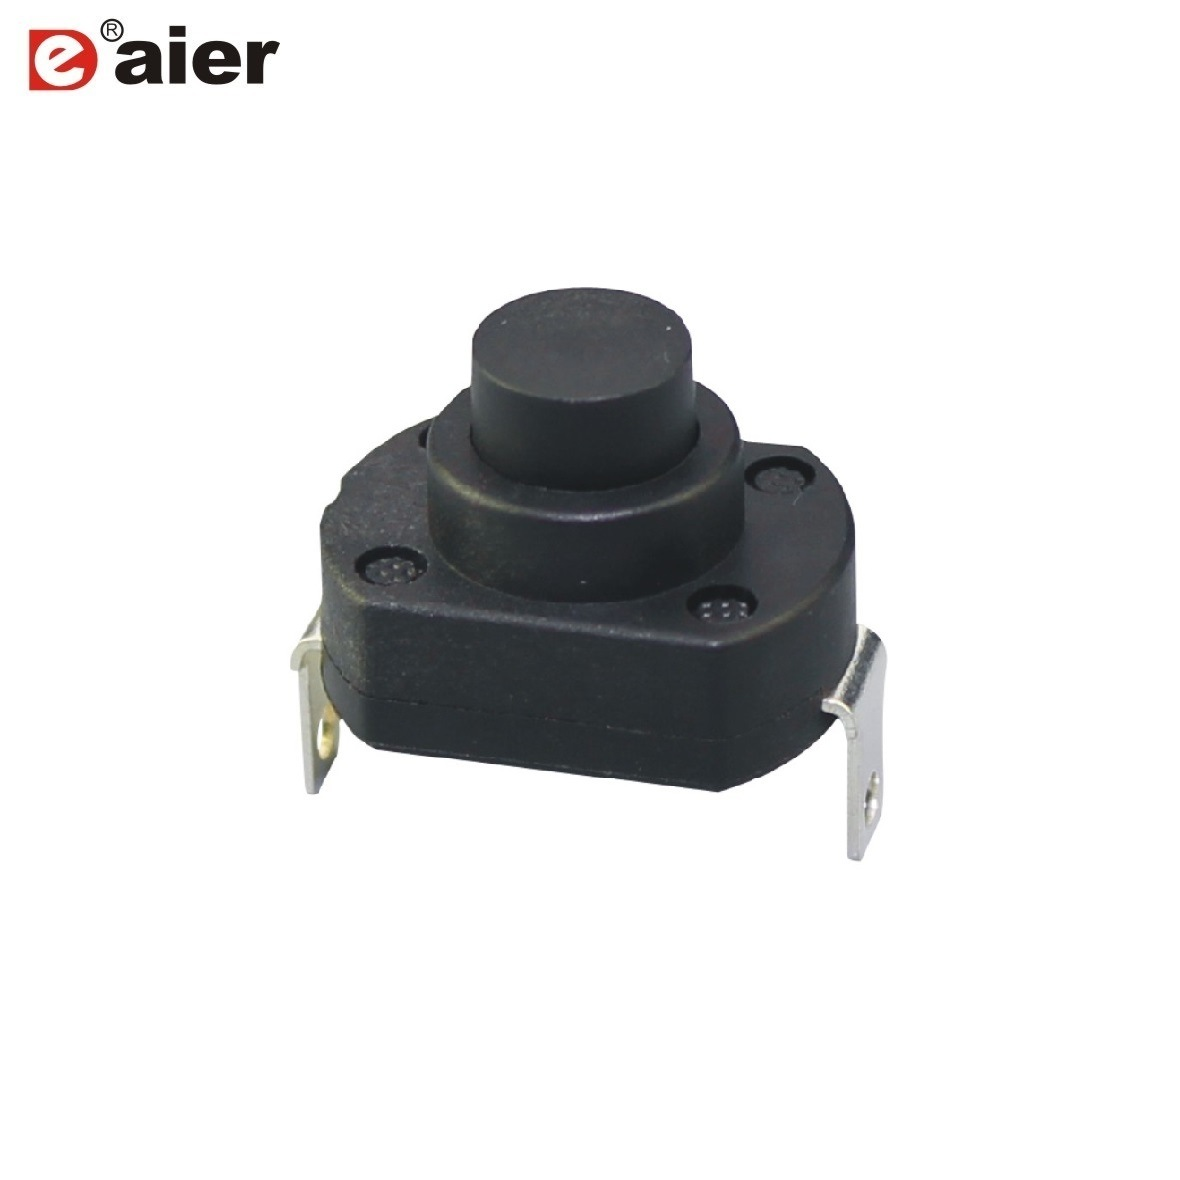 China 5A 250VAC on-off Flashlight Push Button Switches with Angled ...